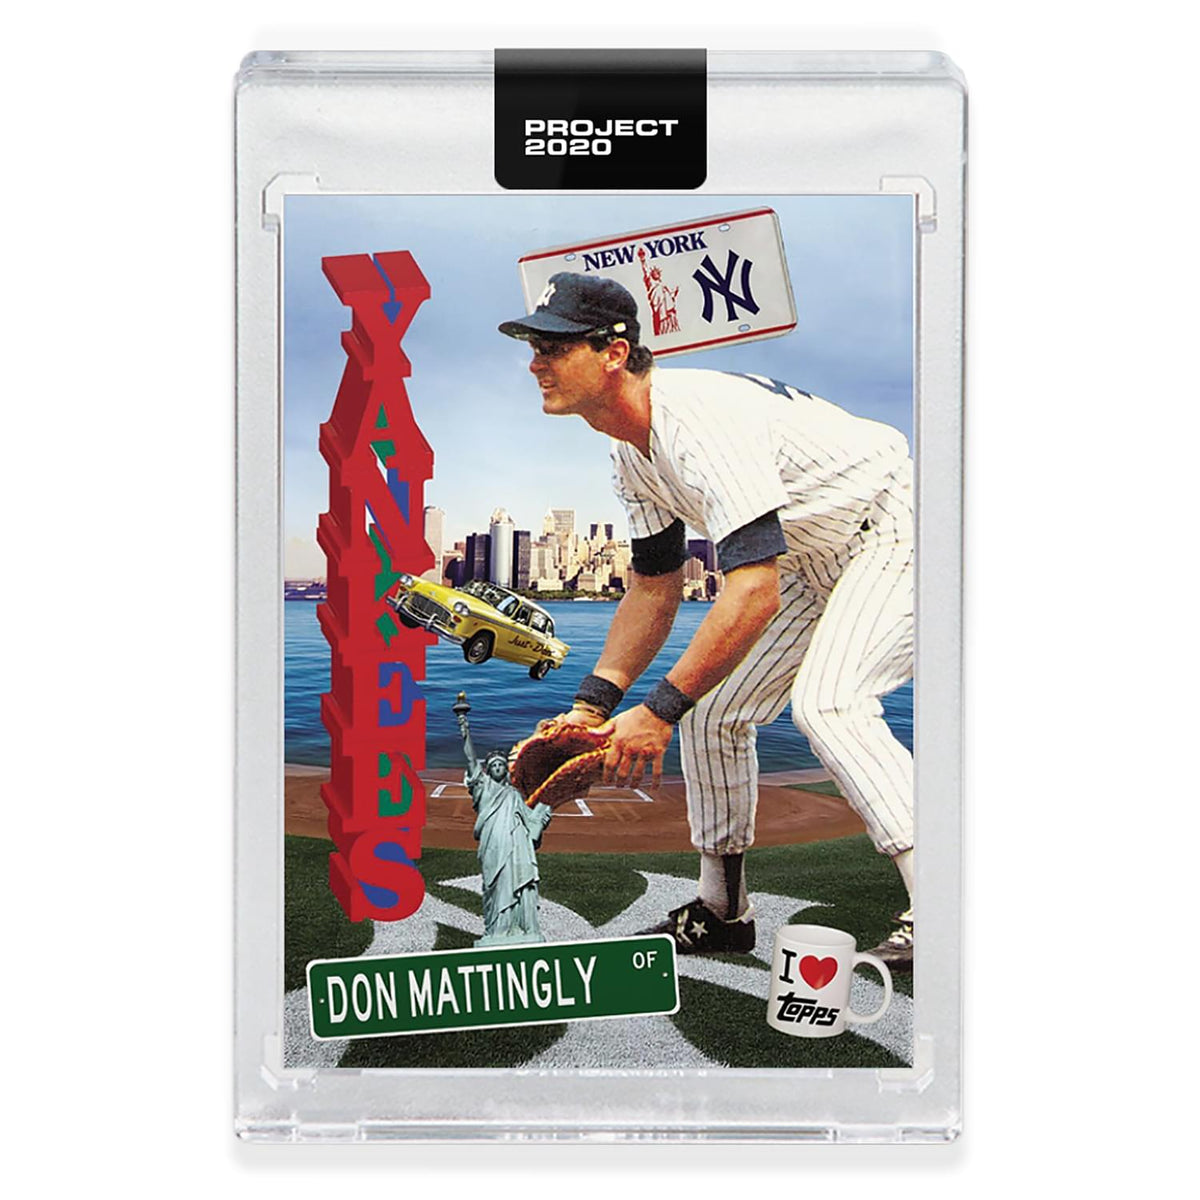 Topps PROJECT 2020 Card 278 - 1984 Don Mattingly by Don C